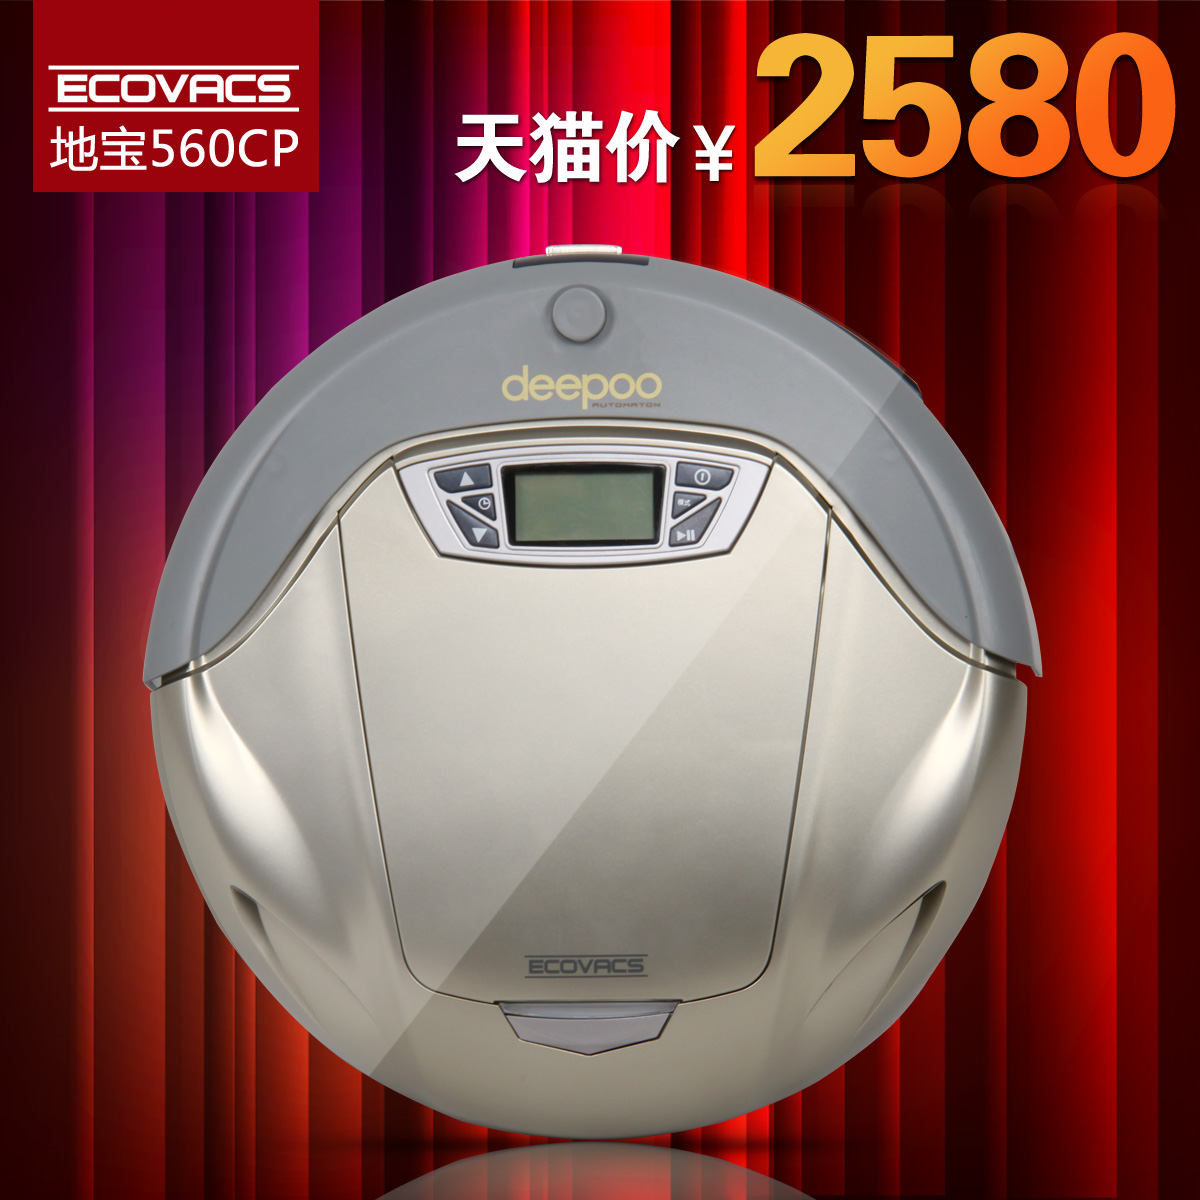 Ranunculaceae worsley ecovacs 560-cp household intelligent fully-automatic sweeper robot vacuum cleaner